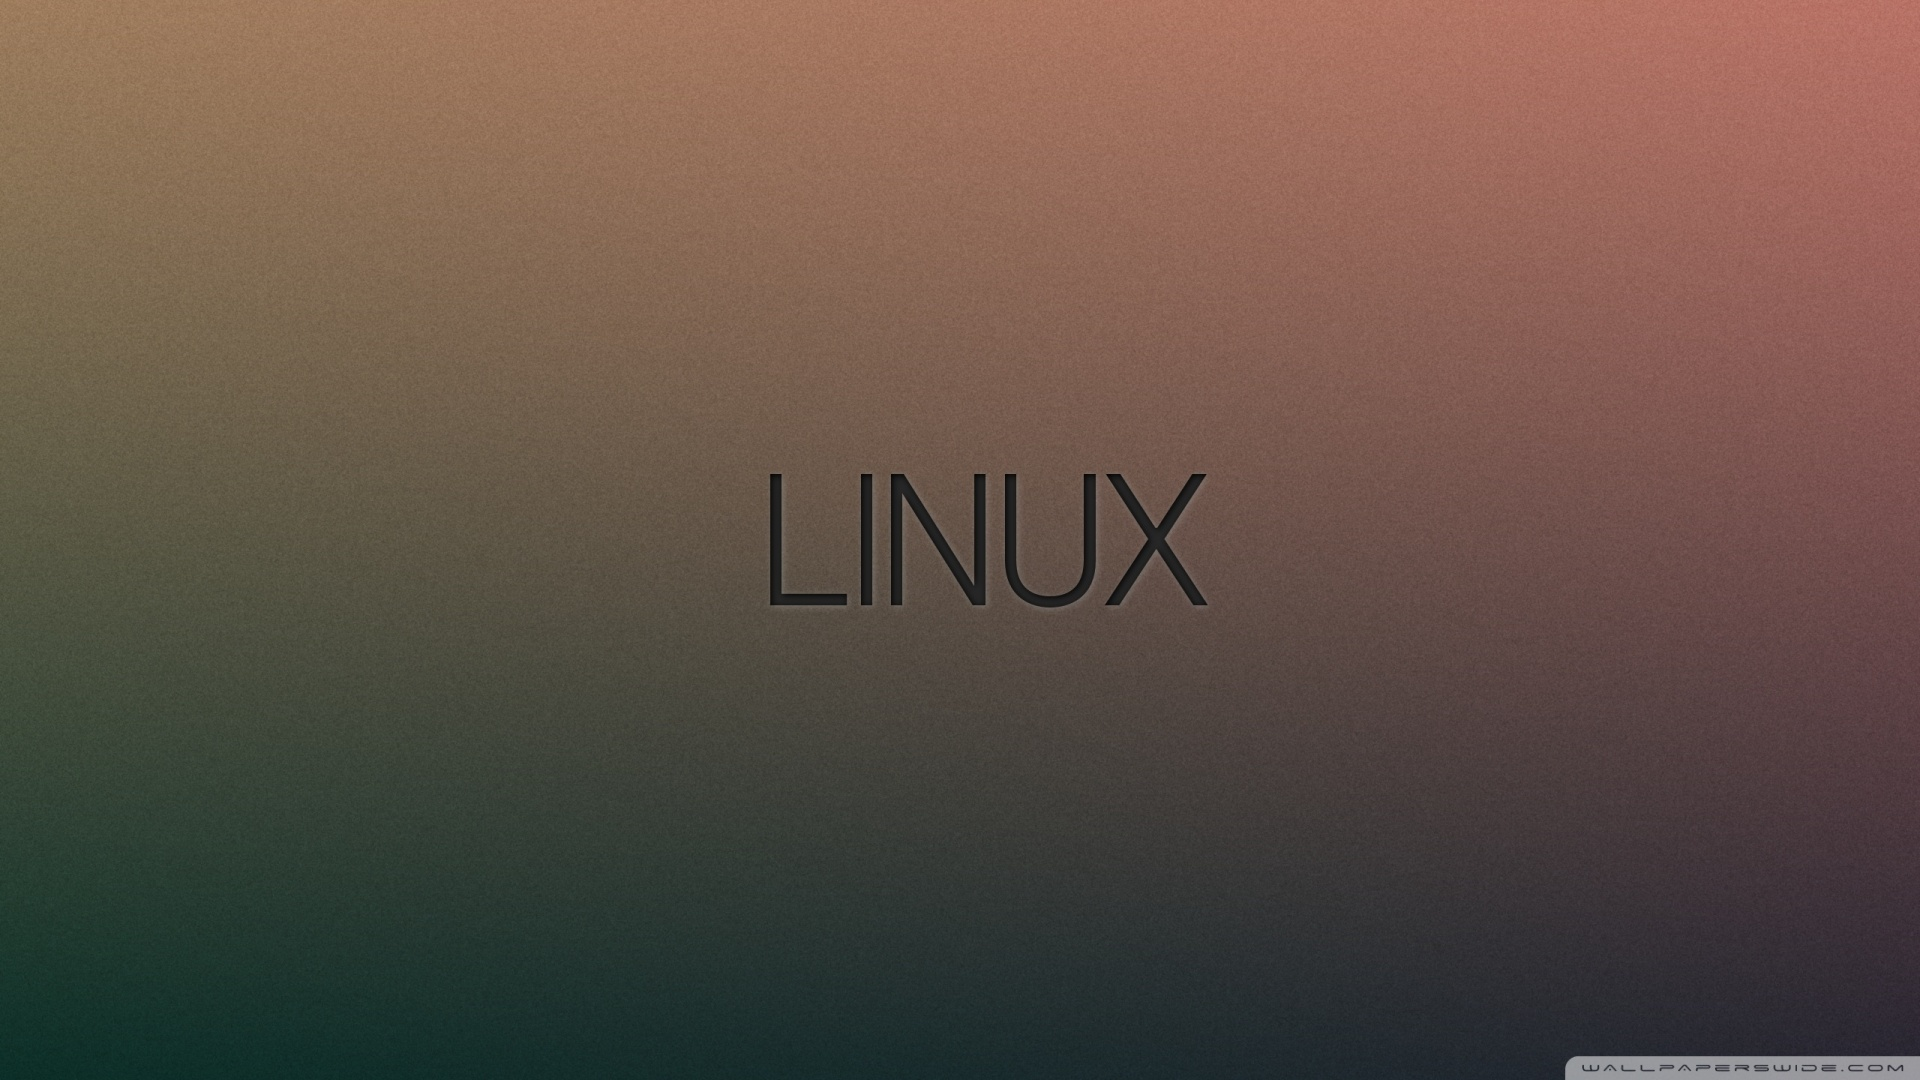 Wallpaper For Linux